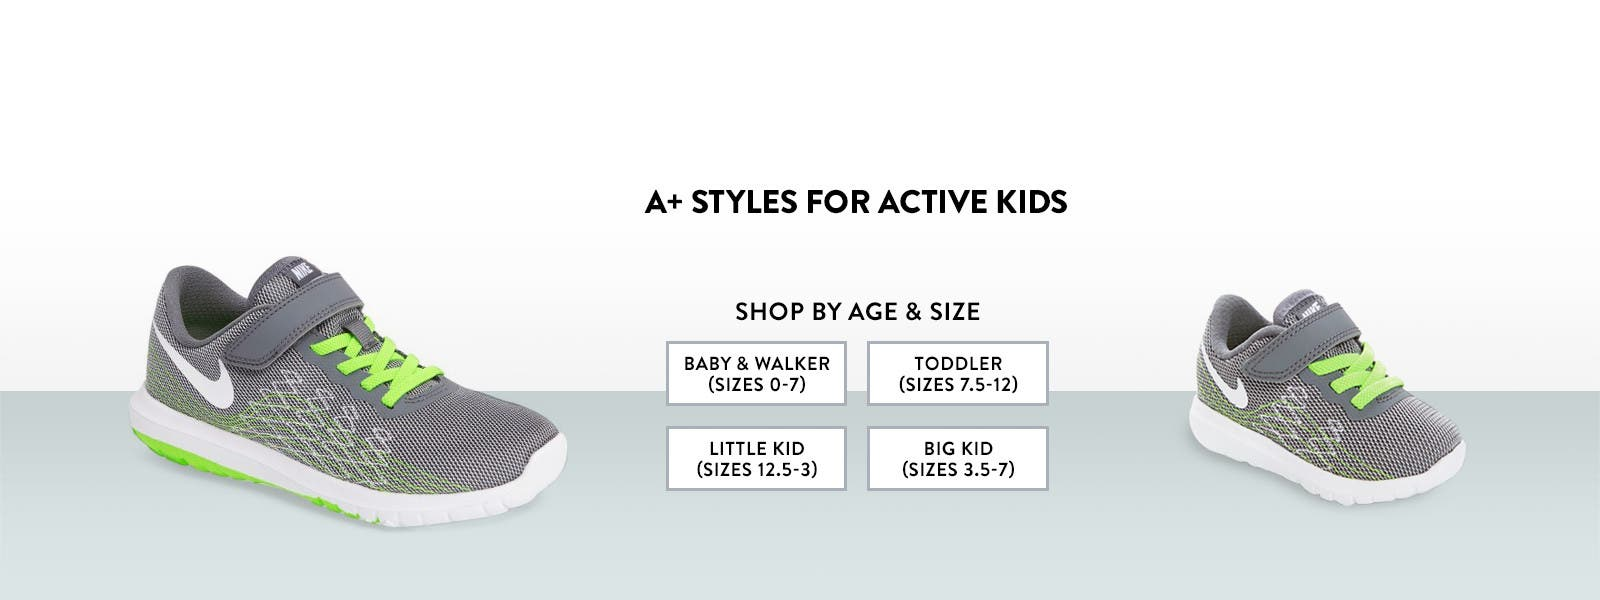 A+ styles for active kids from Nike.